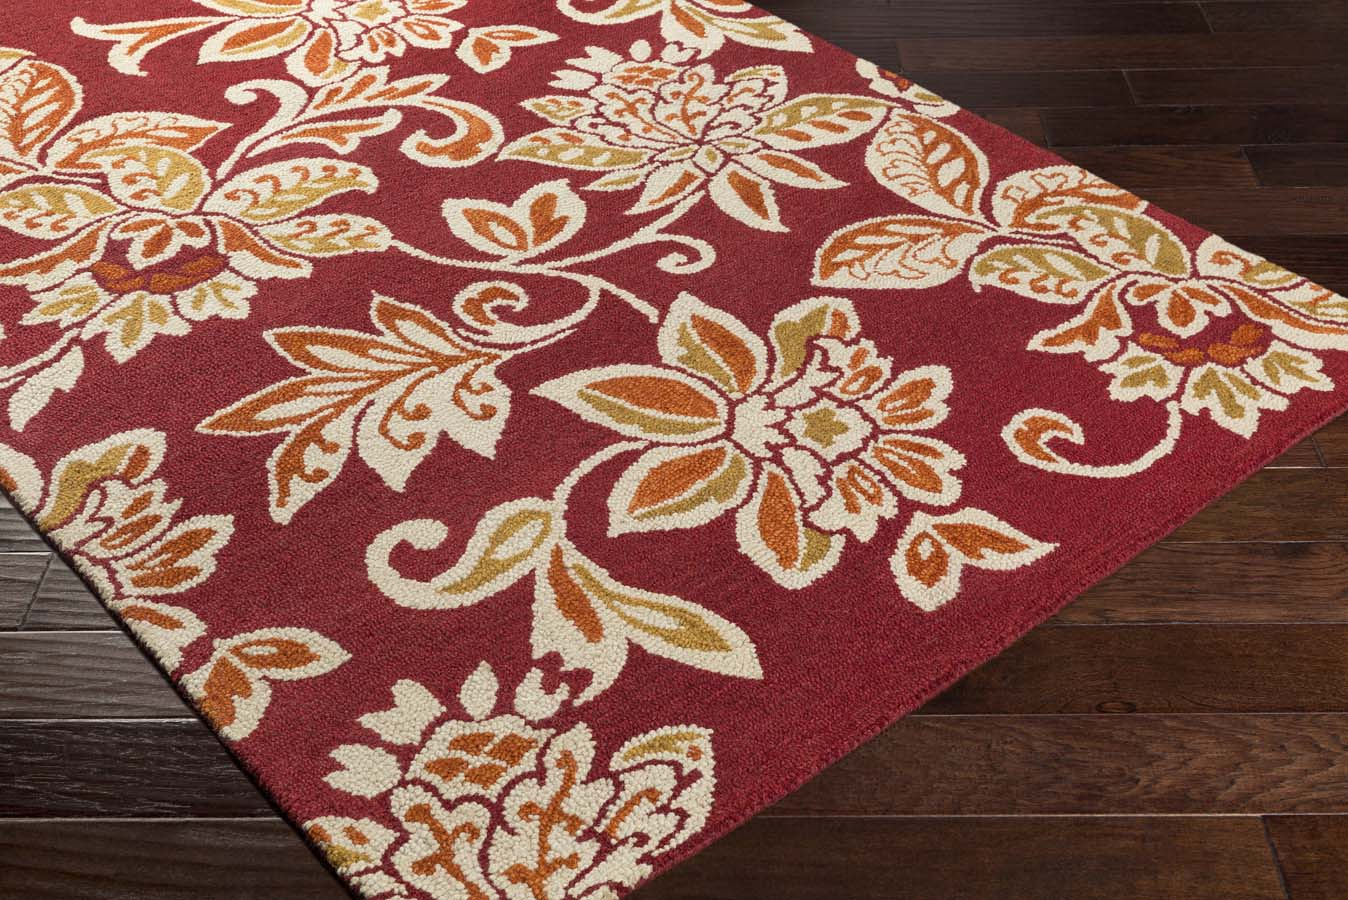 Artistic Weavers RHODES RDS-2319 Elsie Red/Off-White Rug